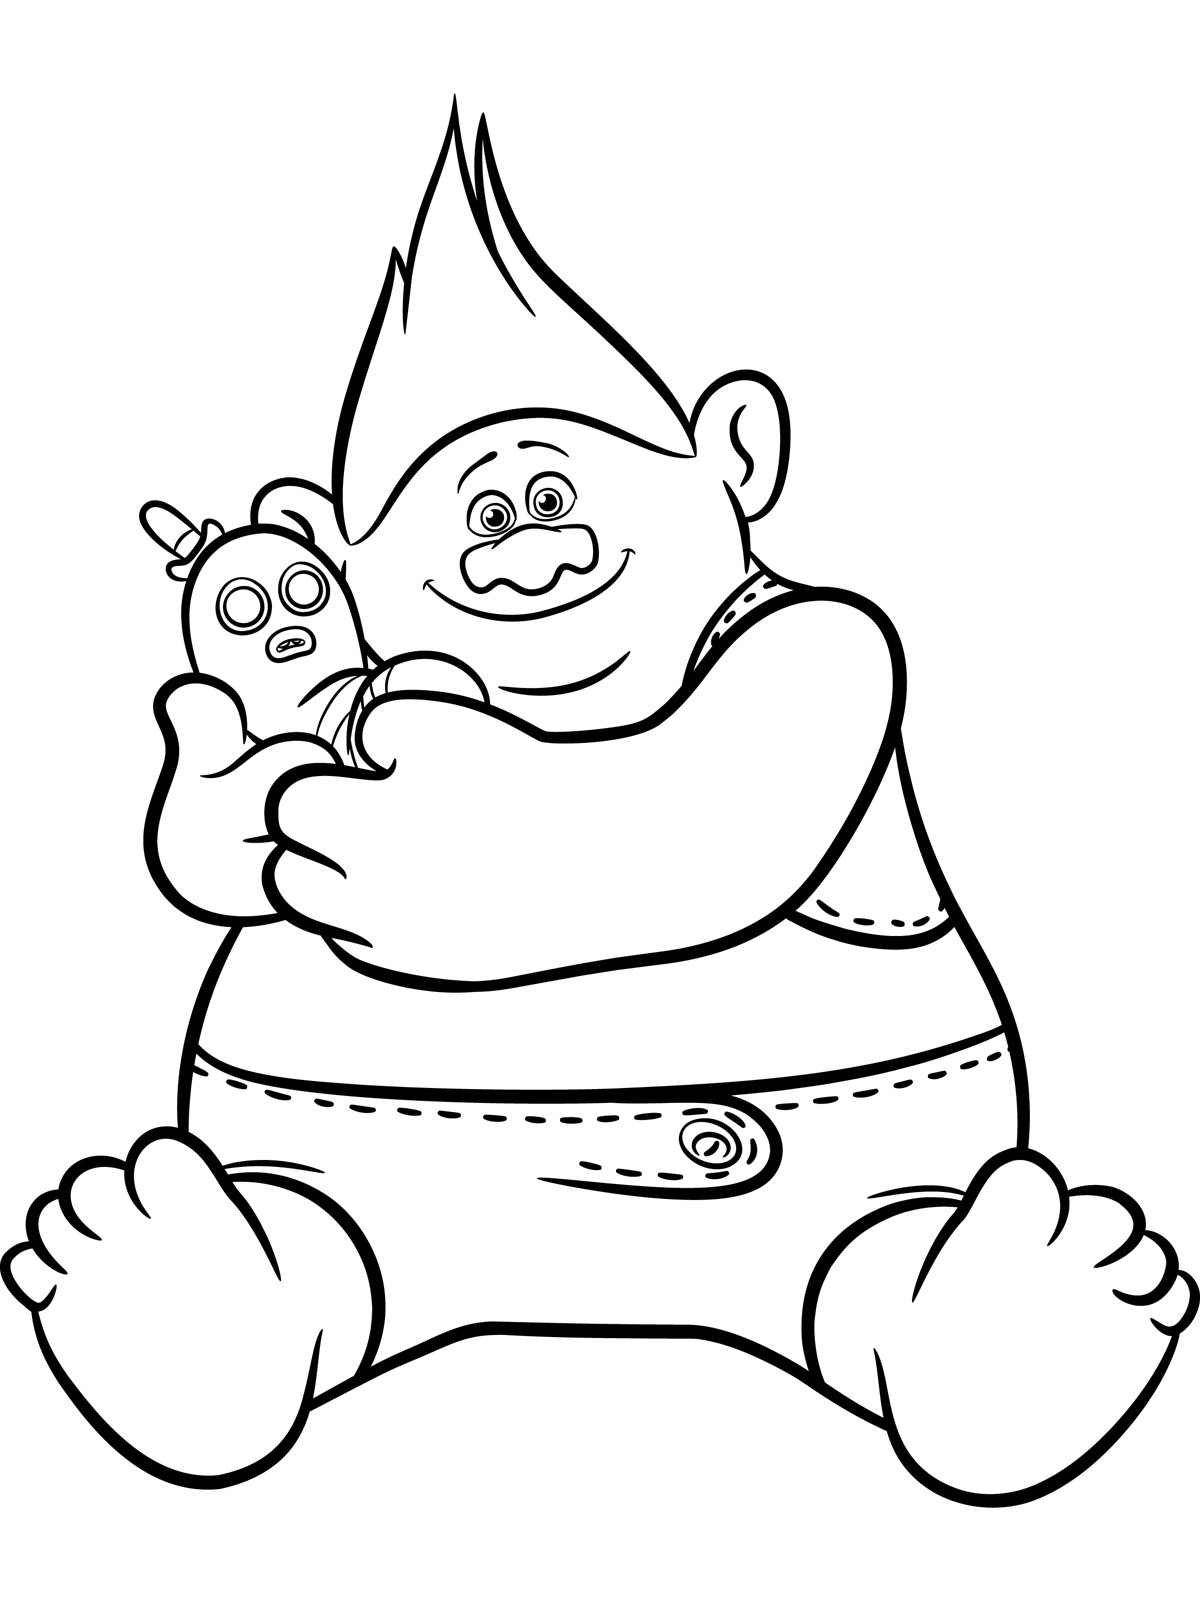 Trolls Coloring Sheet  Trolls Coloring pages to and print for free